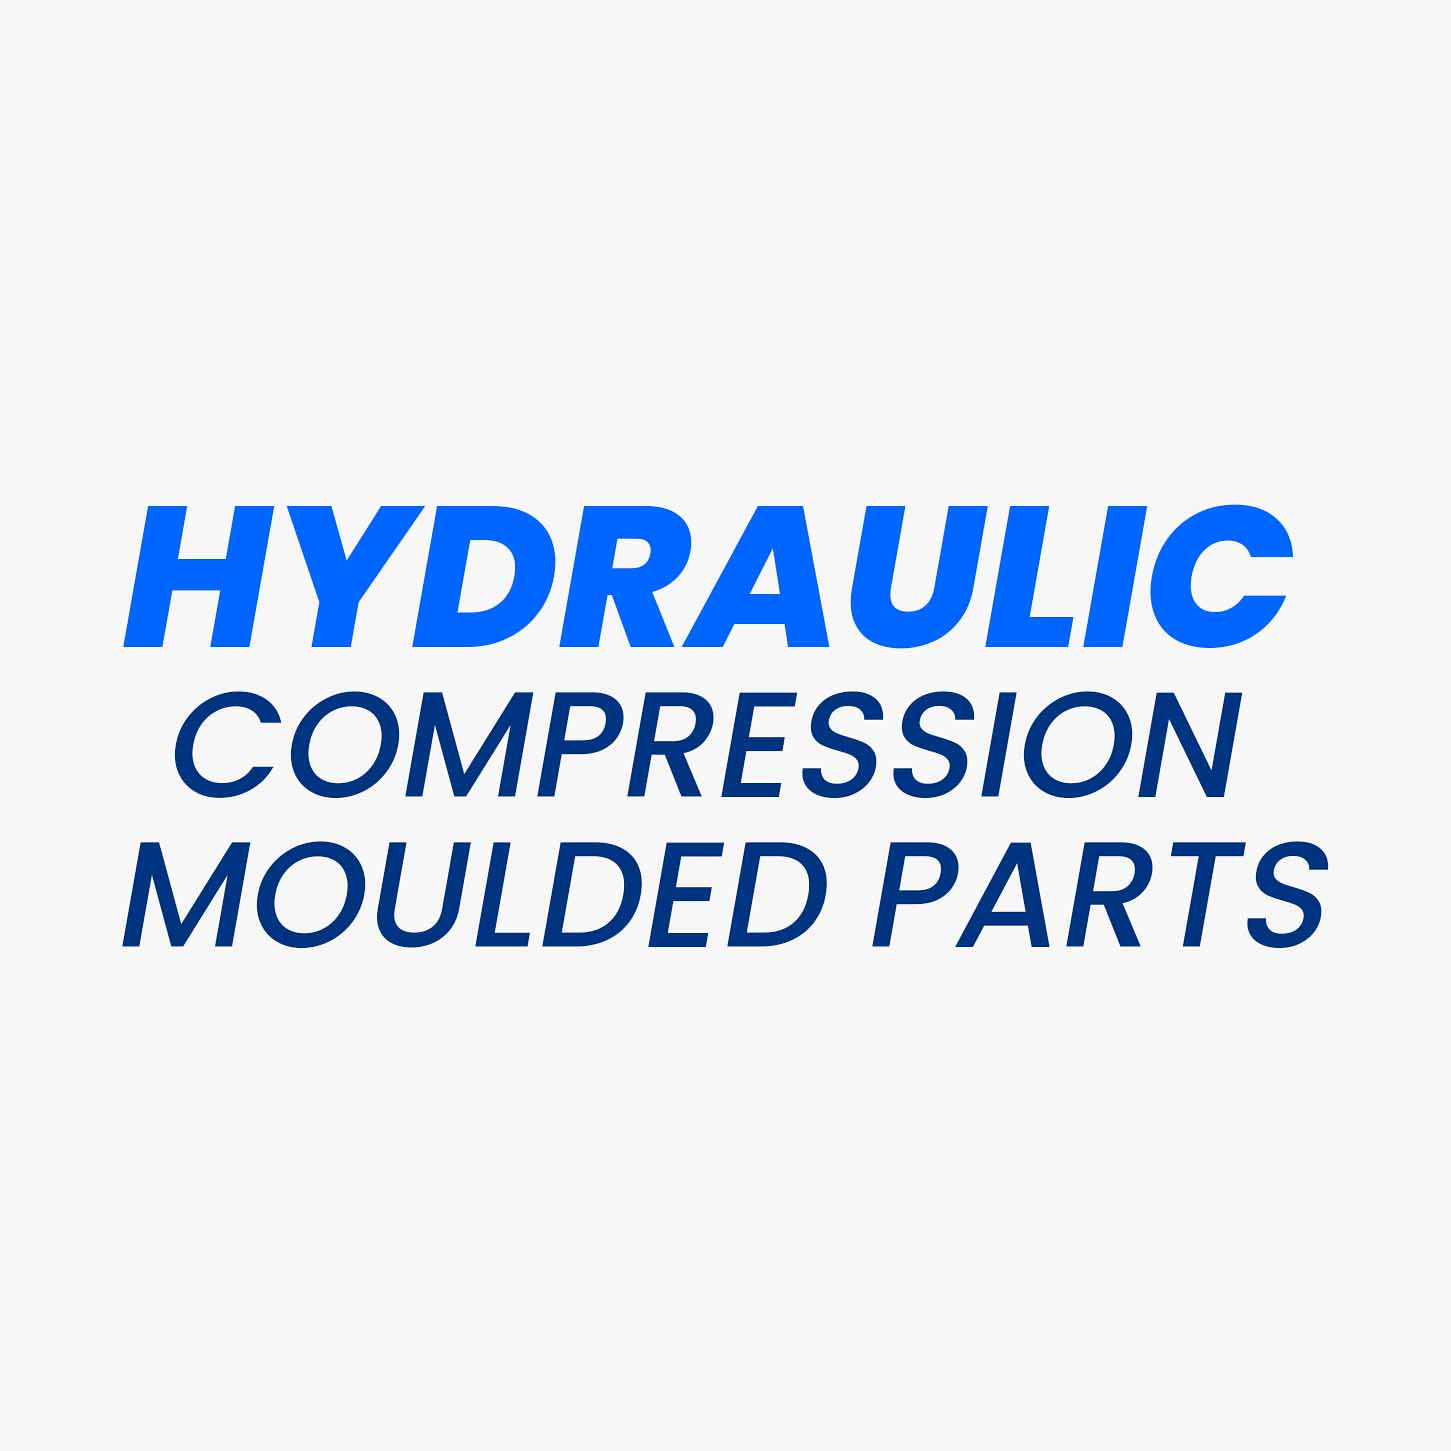 As the traditional metal parts are now being produced from polymers, hydraulic compression moulding has become one of the fastest-growing sectors in hydraulic systems. In the Hydraulic Compression Moulding process, the moulding material in granular or powder form is mostly preheated and is compressed under pressure, using two moulds. The heat and pressure are maintained throughout the process, until the material has cured, aiding the production of the desired shapes. This method is followed for making products by using PTFE, filled PTFE compounds and PEEK.